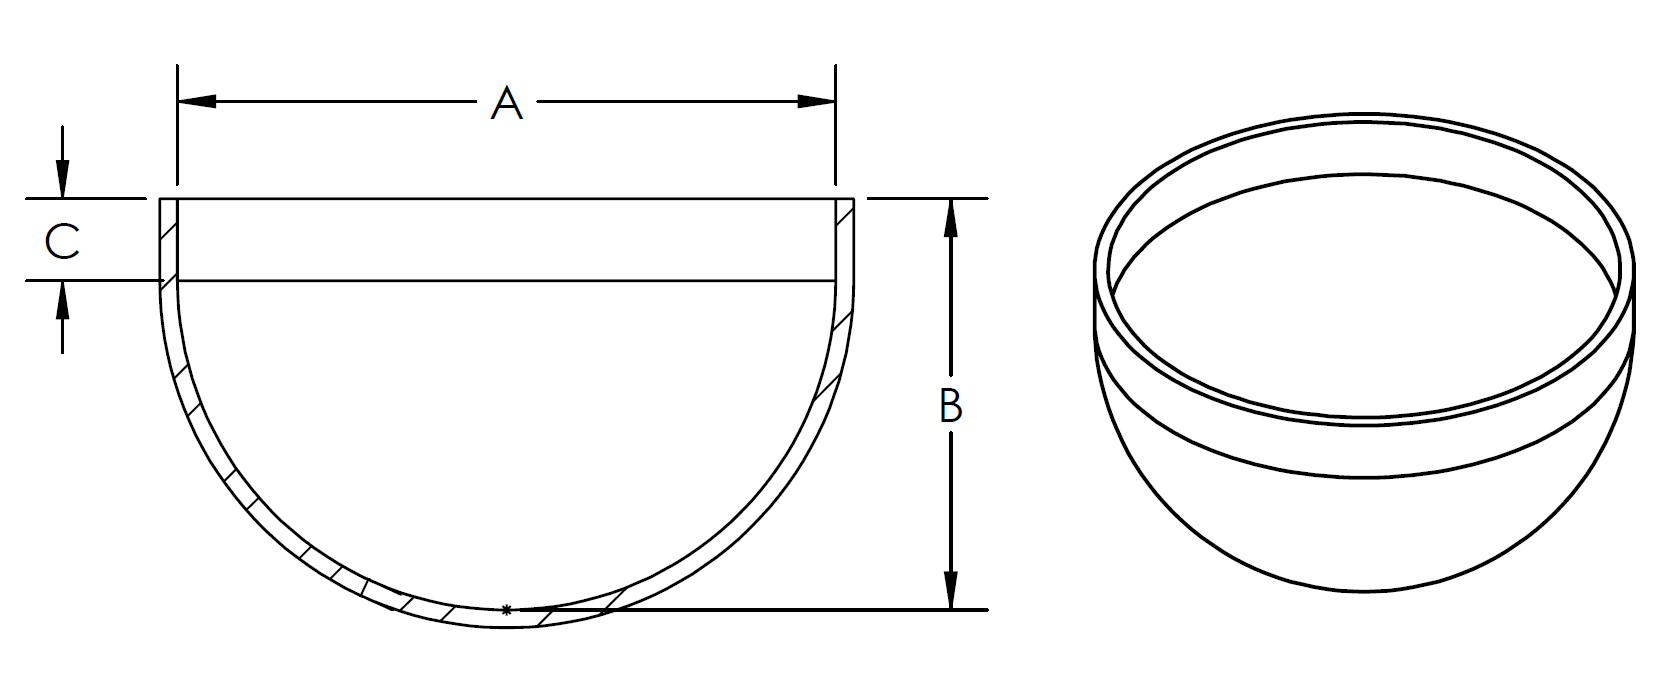 Hemi with straight wall cad graphic